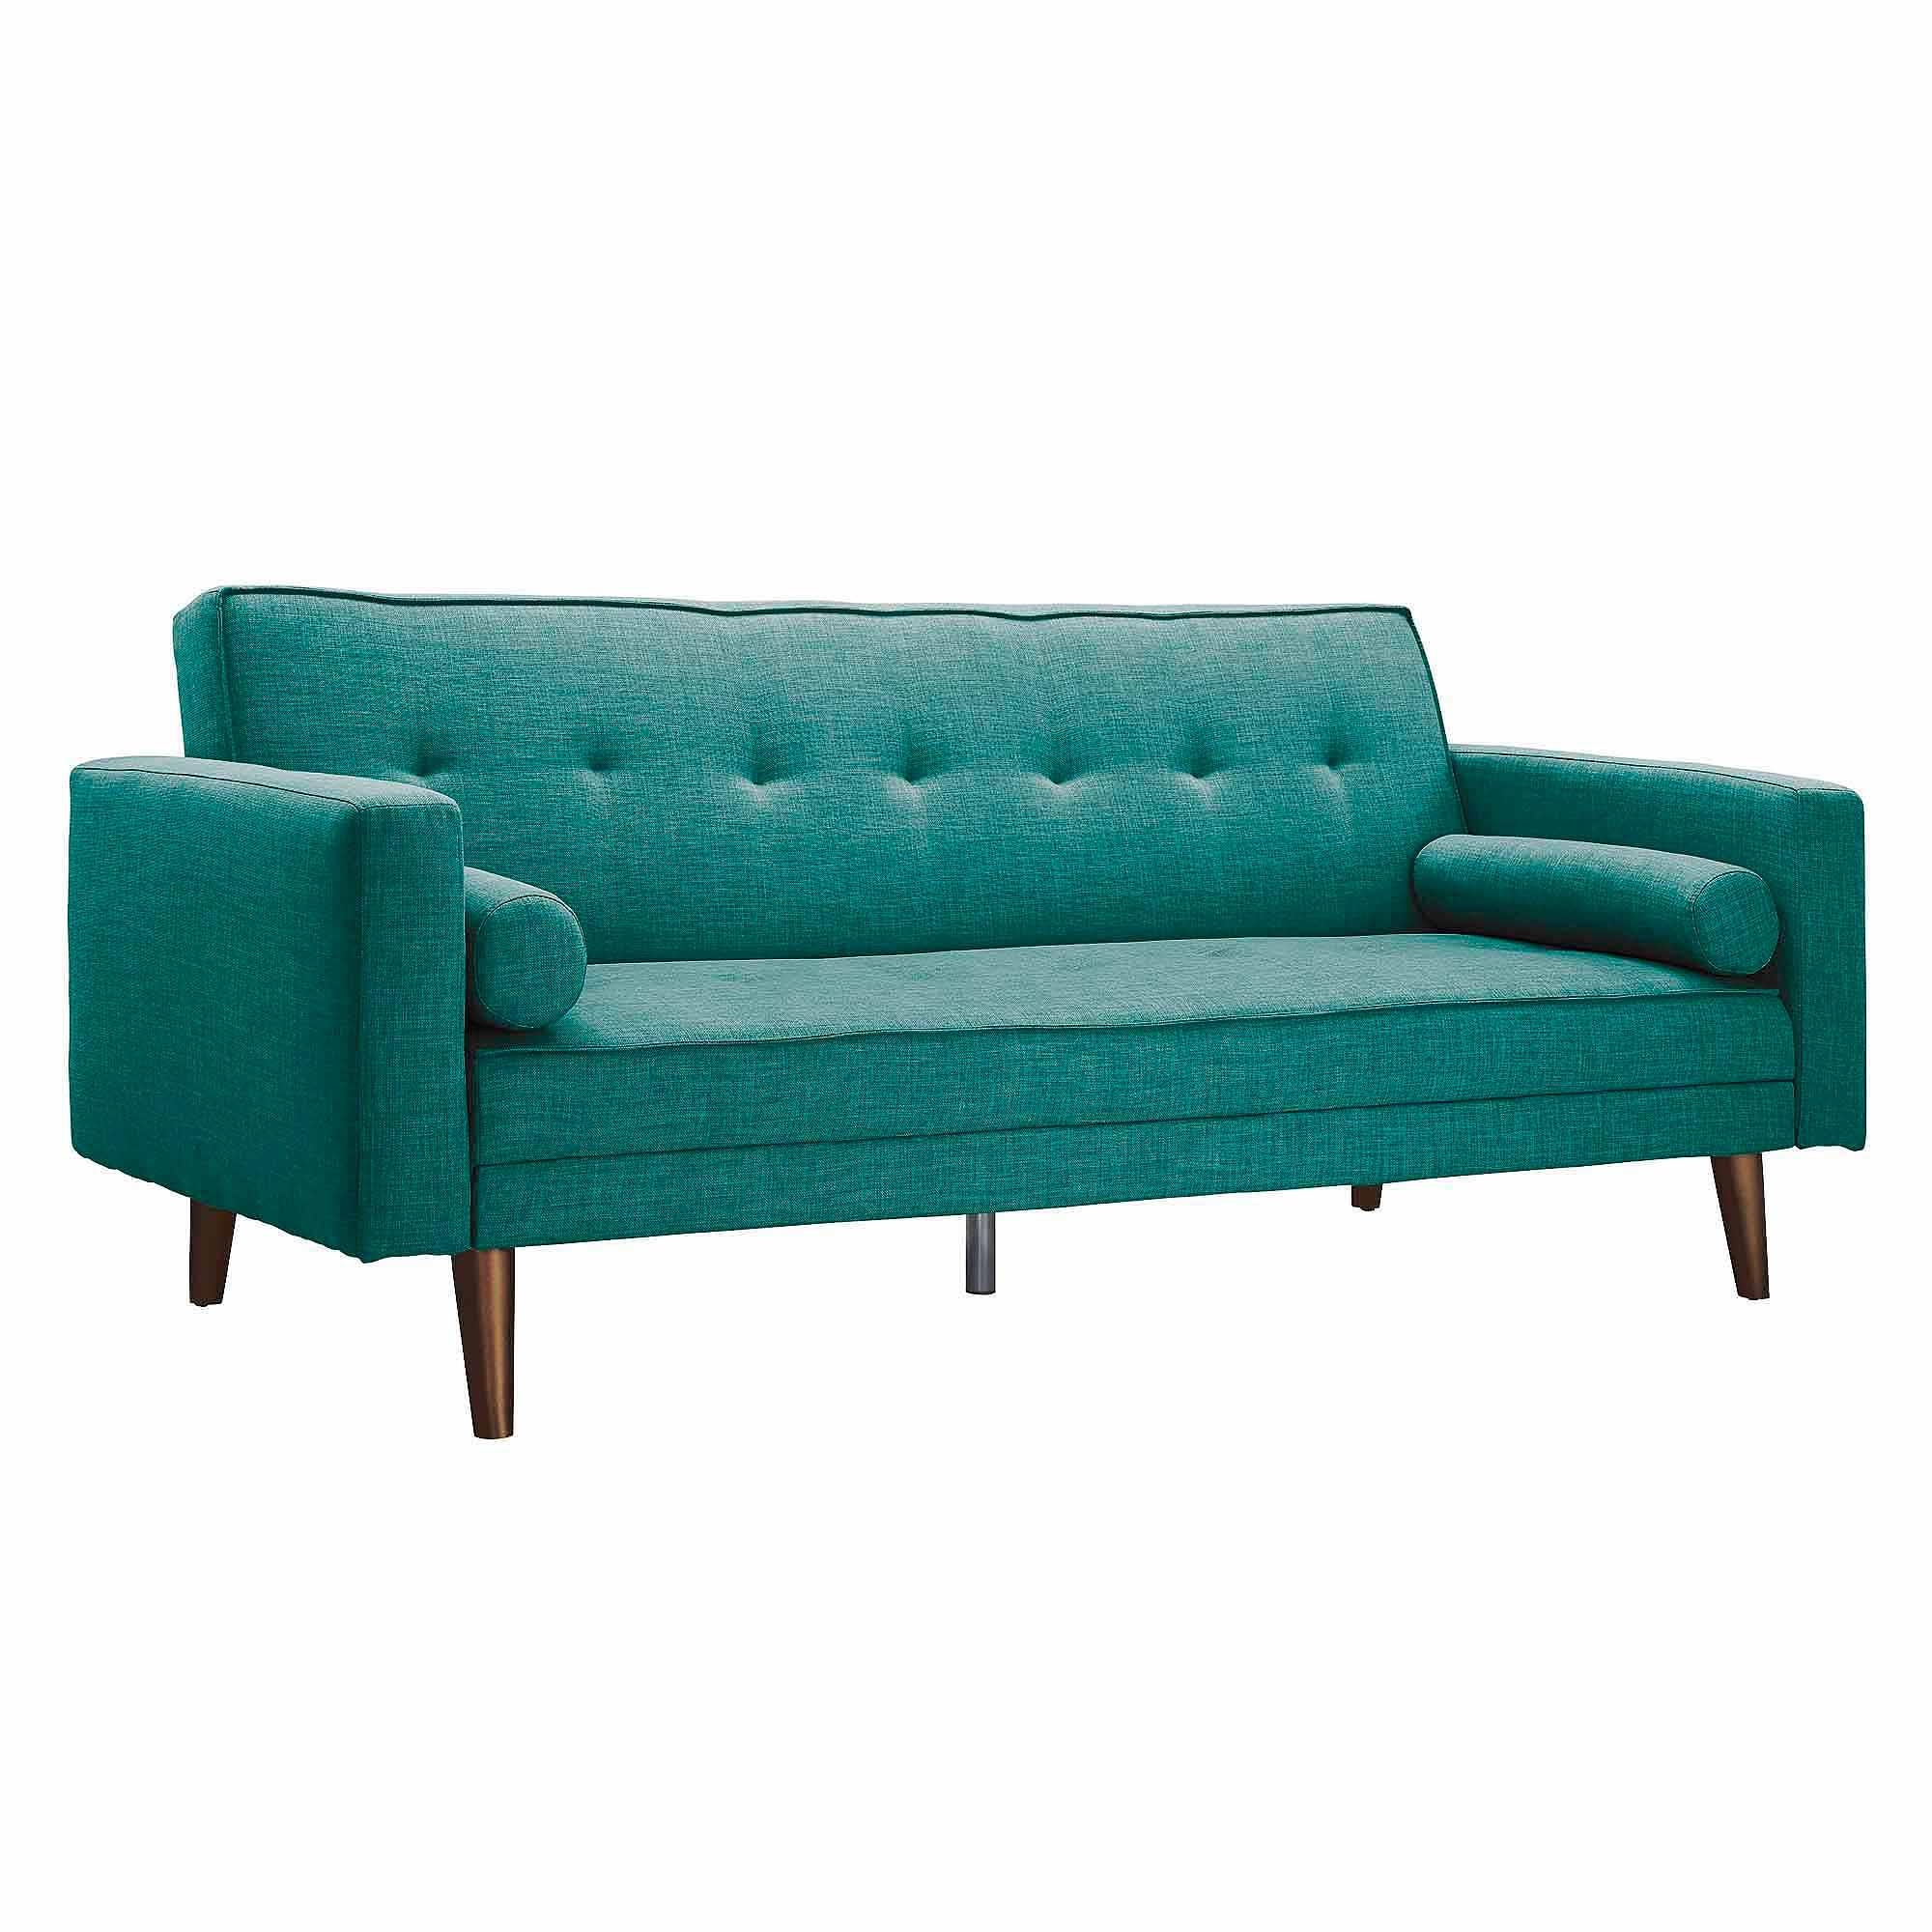 aqua sofa wrought iron come bed 20 best collection of beds ideas